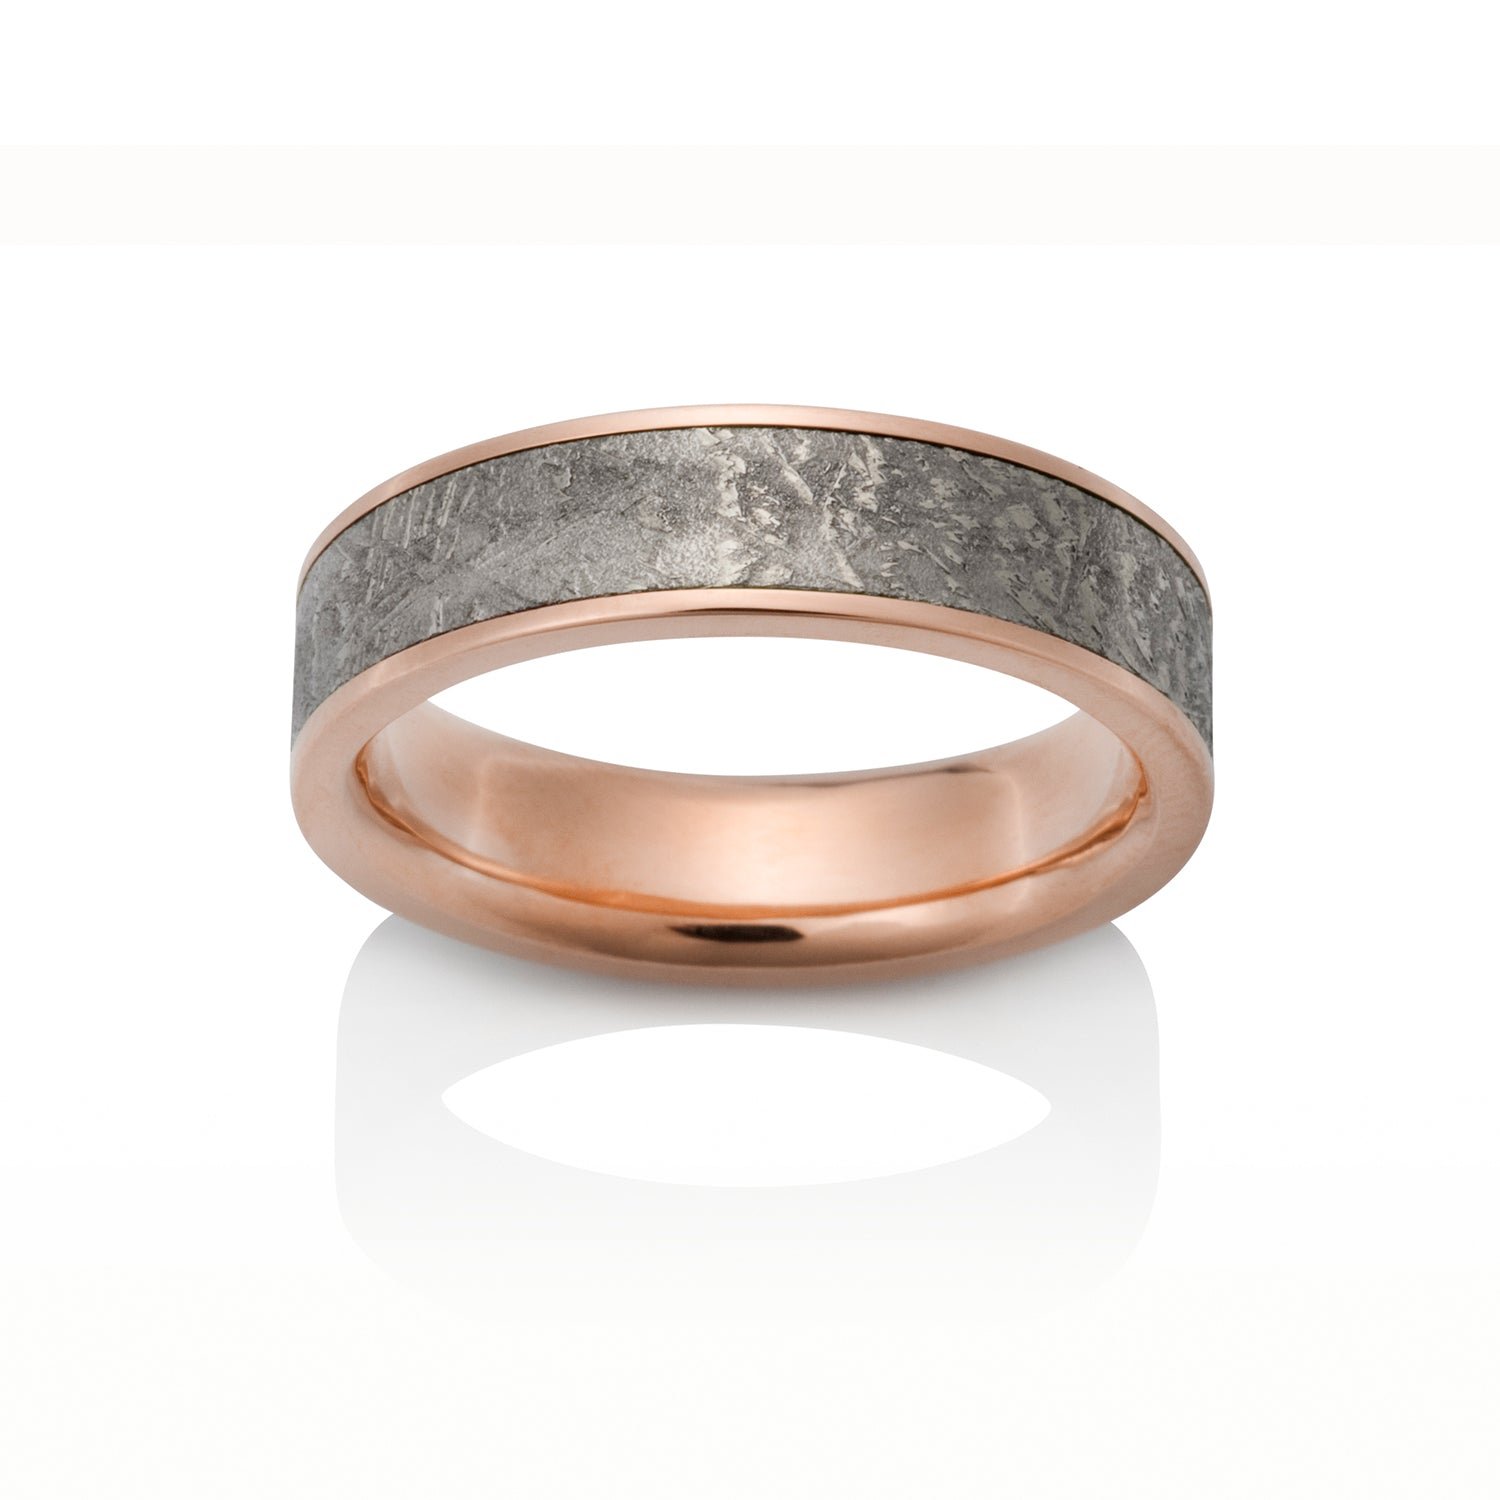 Sirius Meteorite Ring by Chris Ploof - 14k Red Gold - Talisman Collection Fine Jewelers